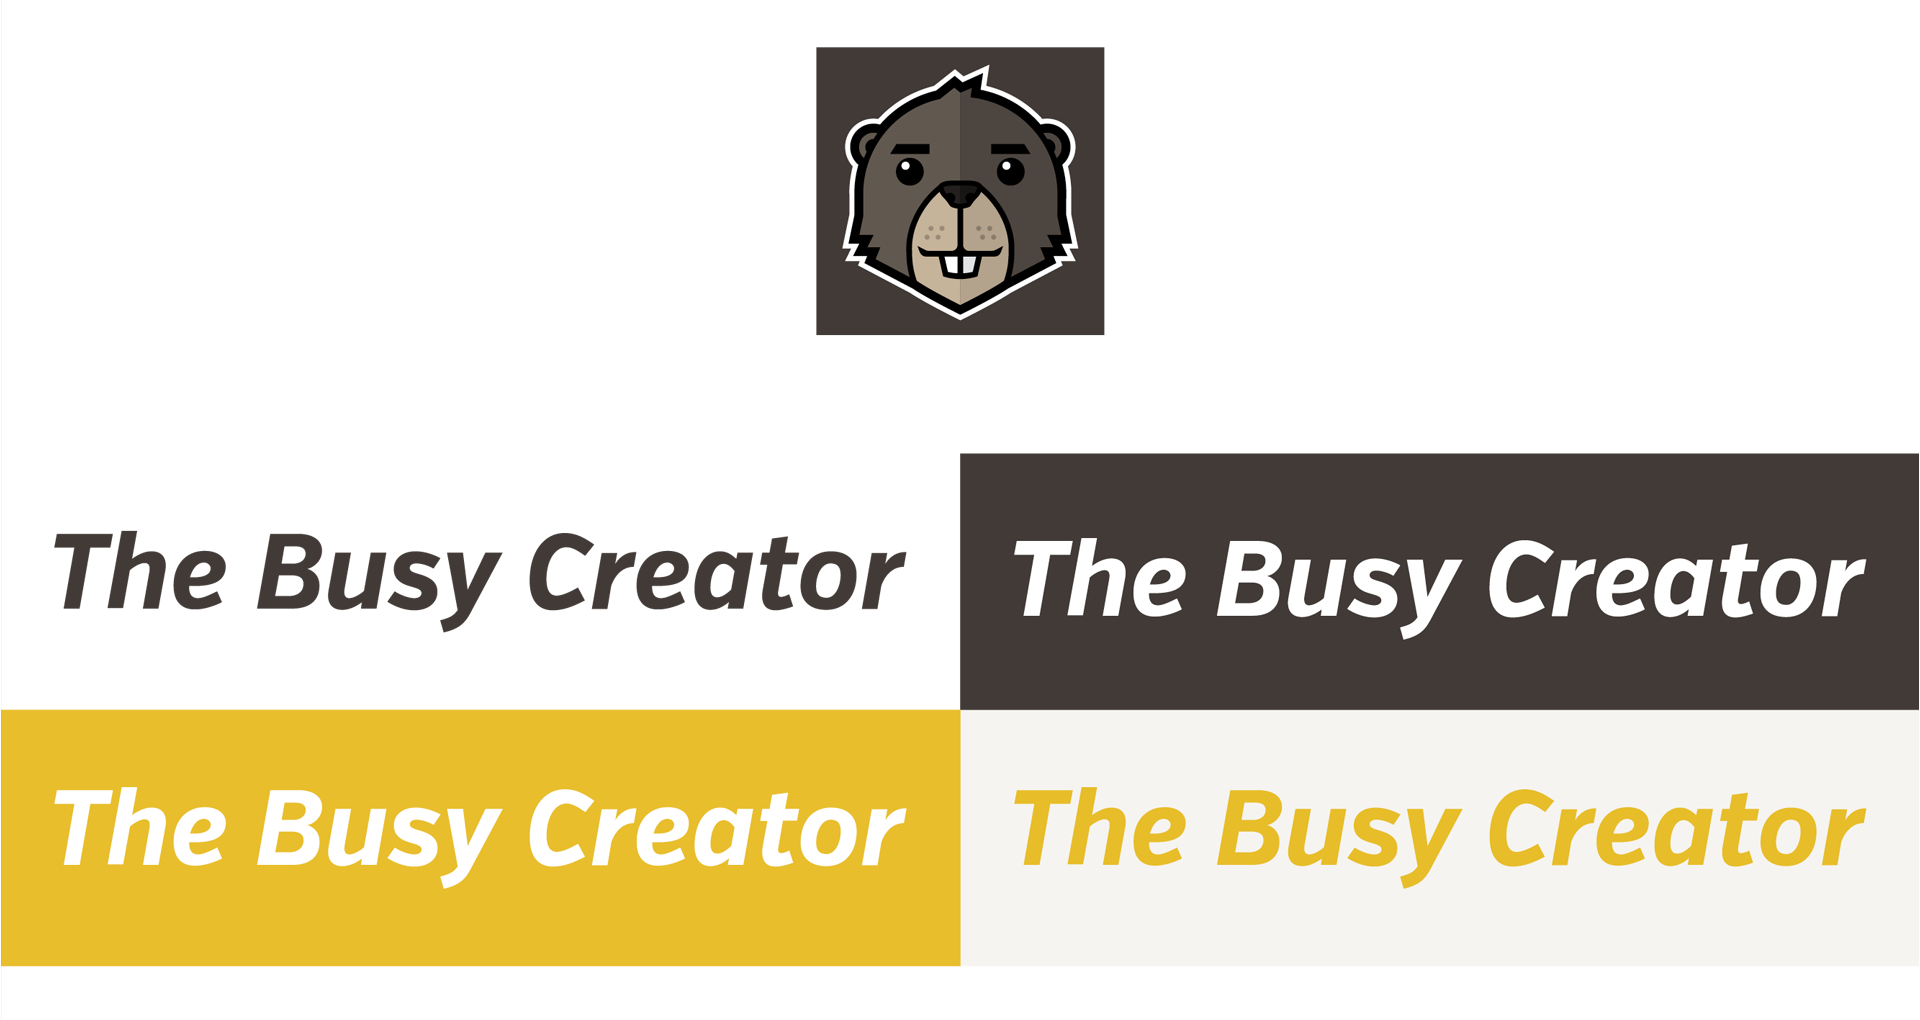 The Busy Creator logo system